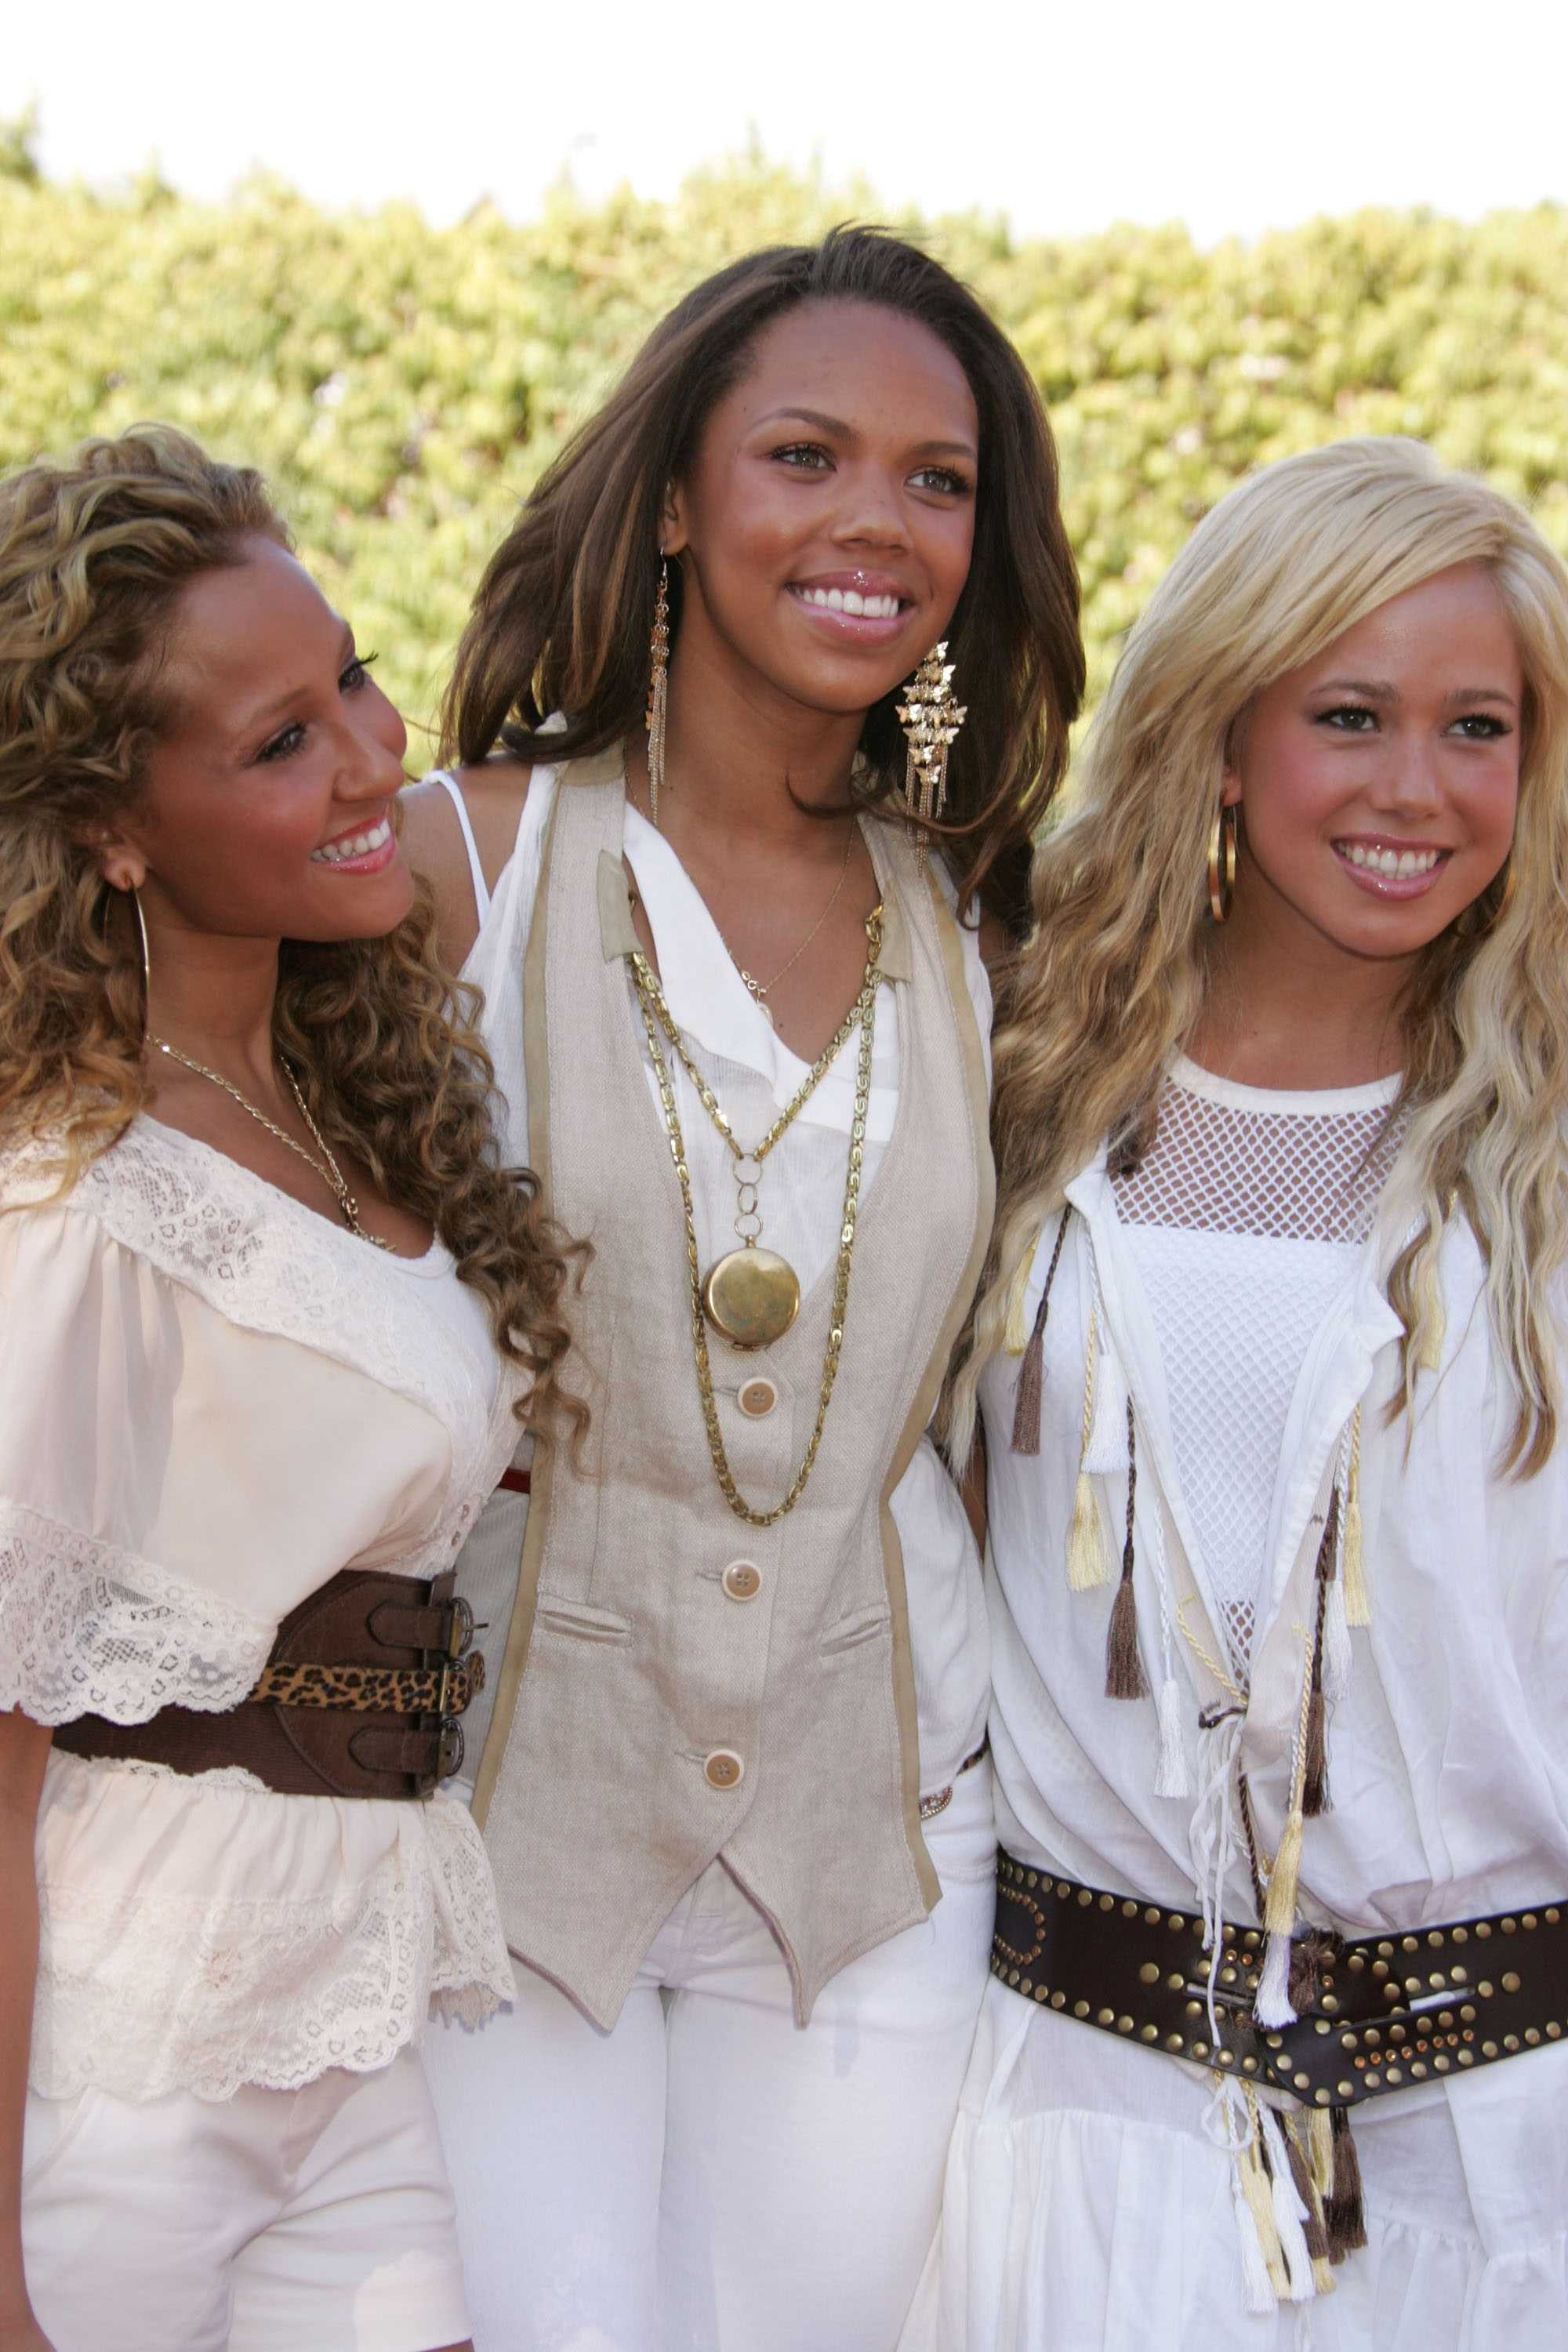 10942_Cheetah_Girls__1_122_962lo.jpg